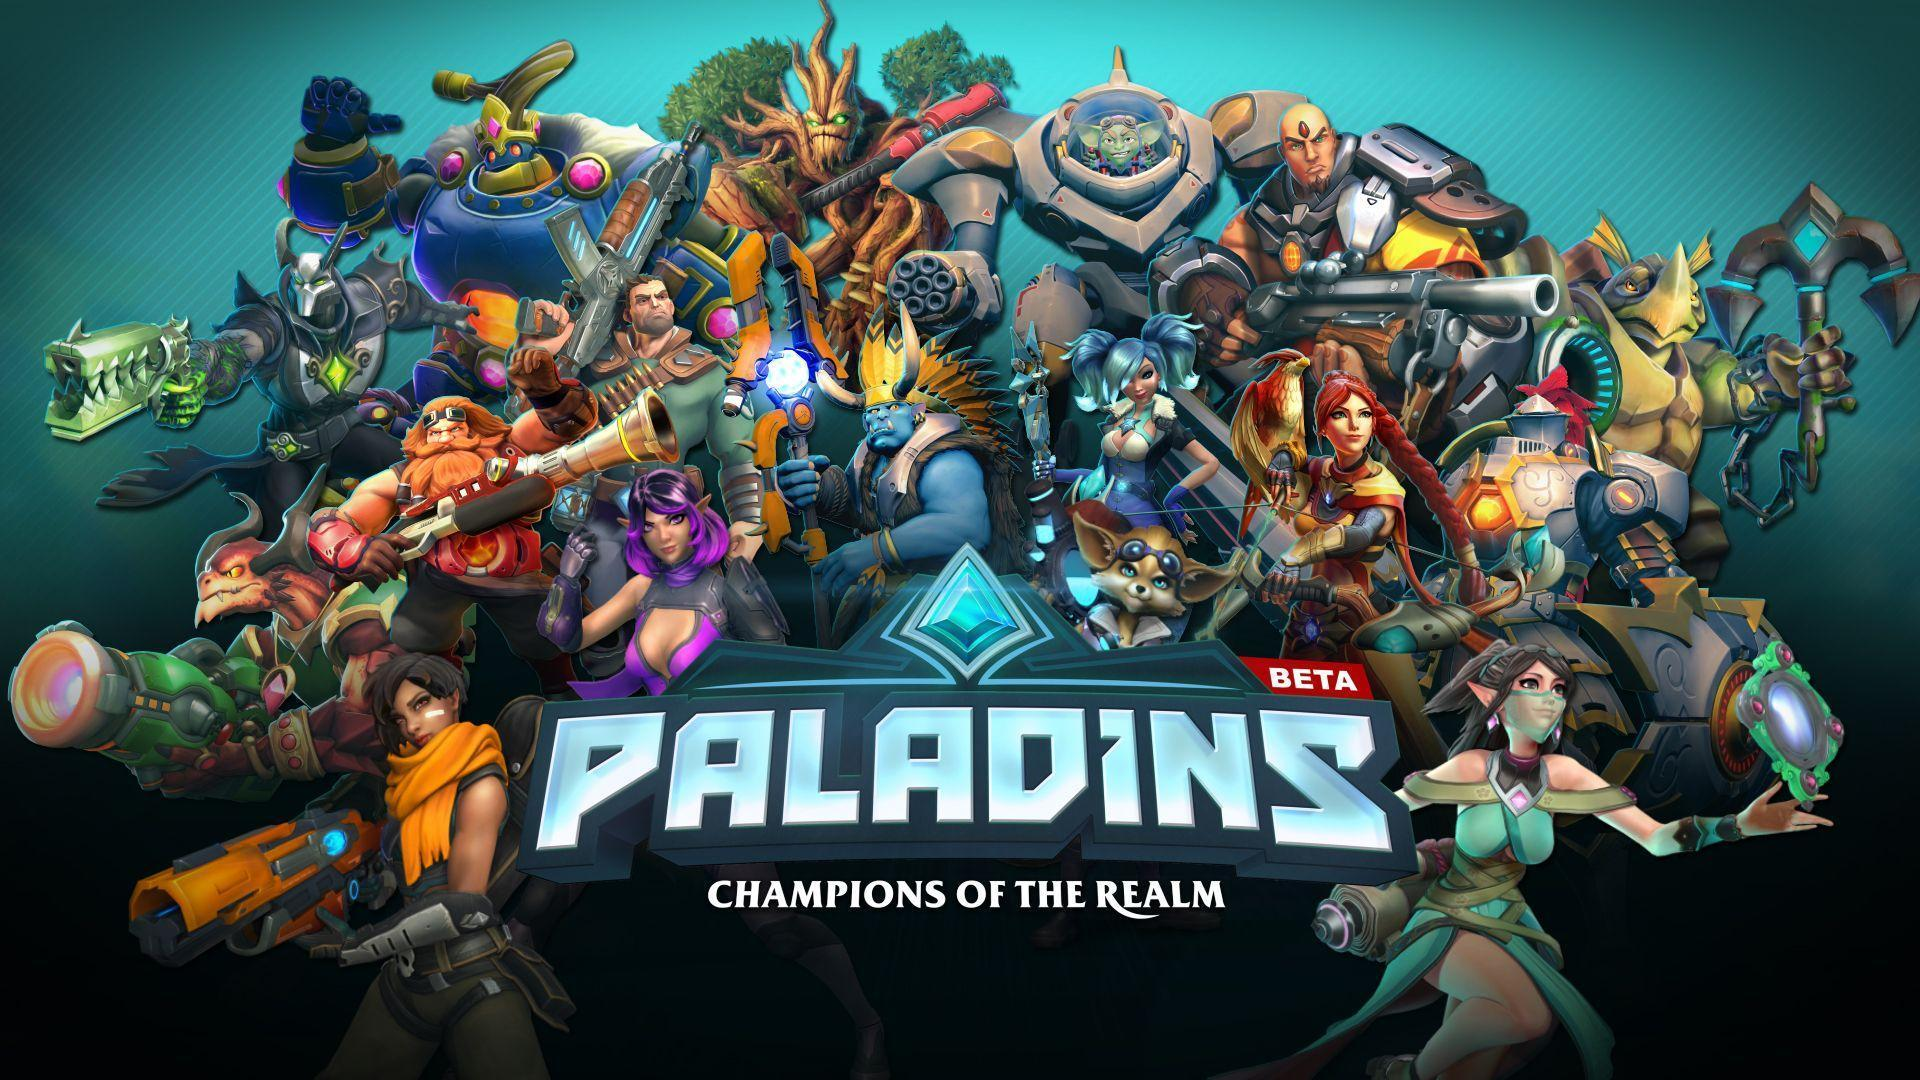 Paladins Wallpapers Wallpaper Cave